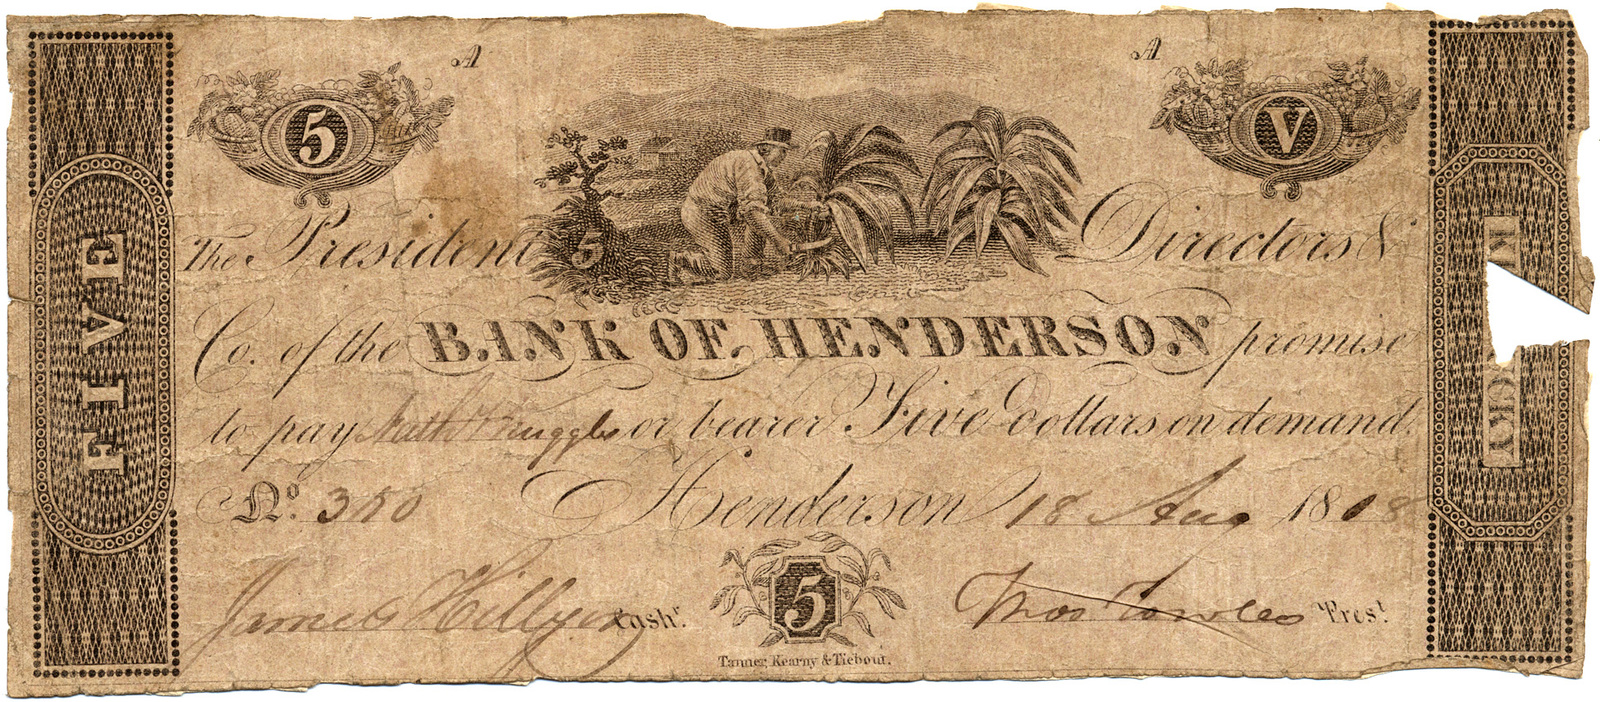 The president, directors & co. of the Bank of Henderson promise to pay ... or bearer, five dollars on demand. Henderson 18 Aug. 1818